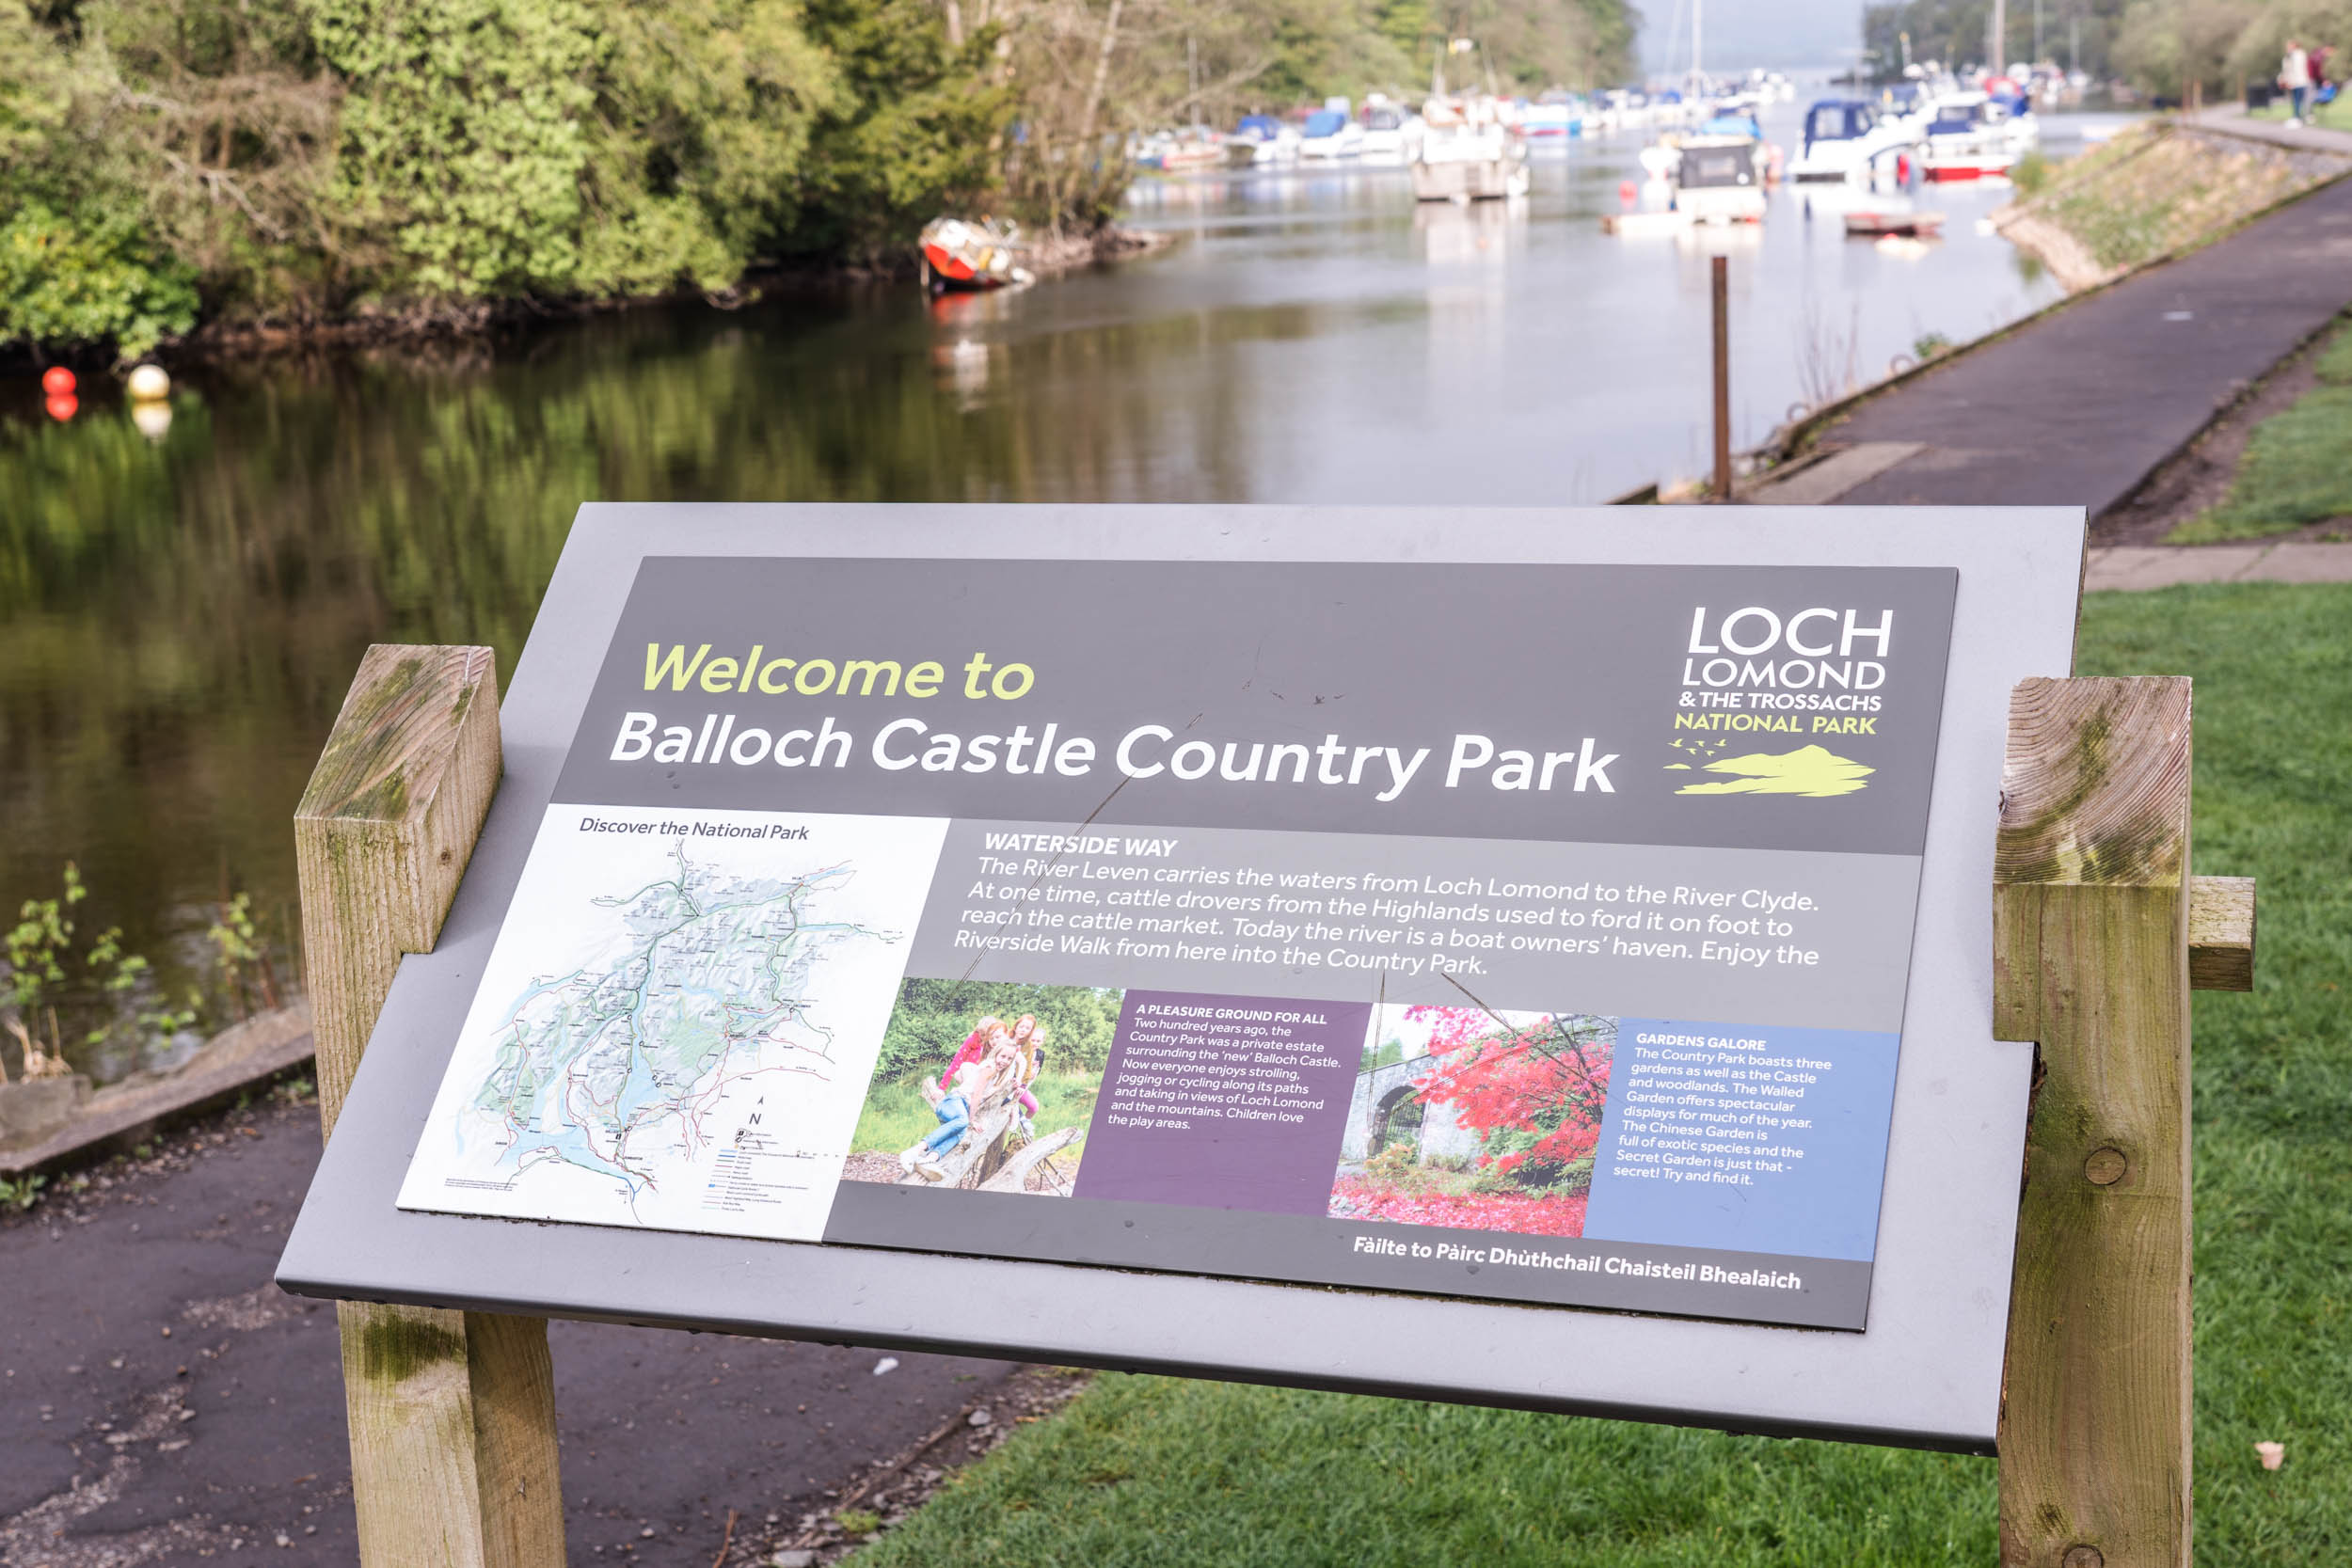 Balloch-Castle-Country-Park-02717.jpg